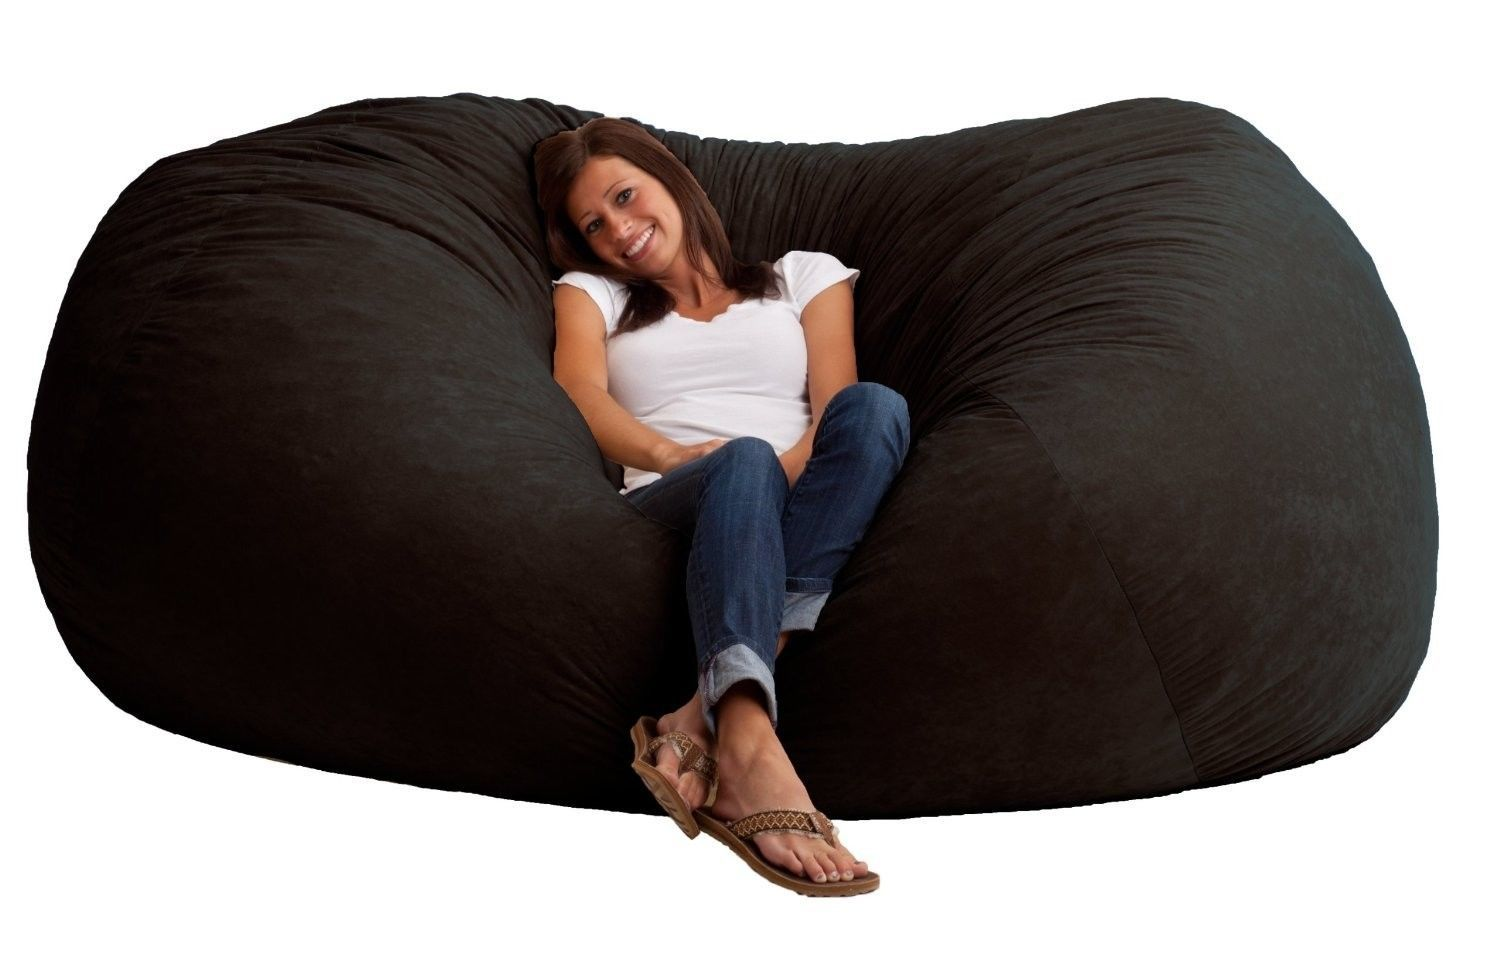 Giant Bean Bag Chair 7 Foot XXL Fuf In And 50 Similar Items